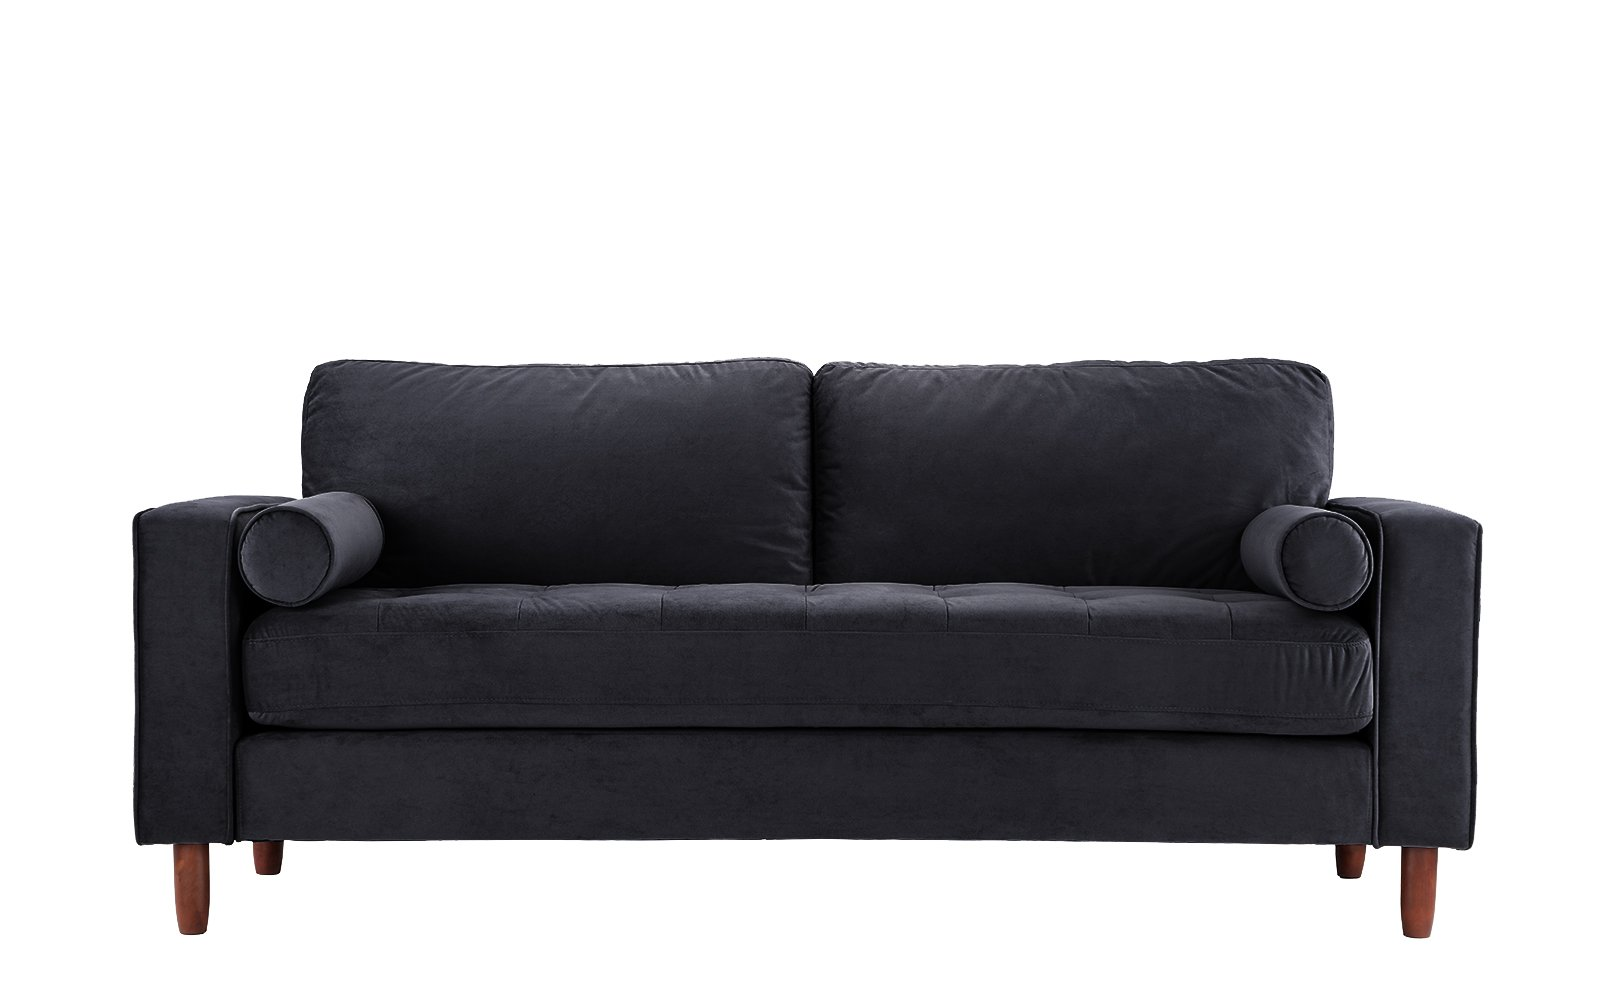 Mid Century Modern Velvet Fabric Sofa, Couch with Bolster Pillows (Black) - Divano Roma Furniture's upholstered sofa with bolster pillows comes in soft and bright color variances Features hand picked soft velvet fabric upholstery with 4 wooden legs Firmly padded cushions that use high density memory foam for added comfort - sofas-couches, living-room-furniture, living-room - 61xkZPc5FdL -